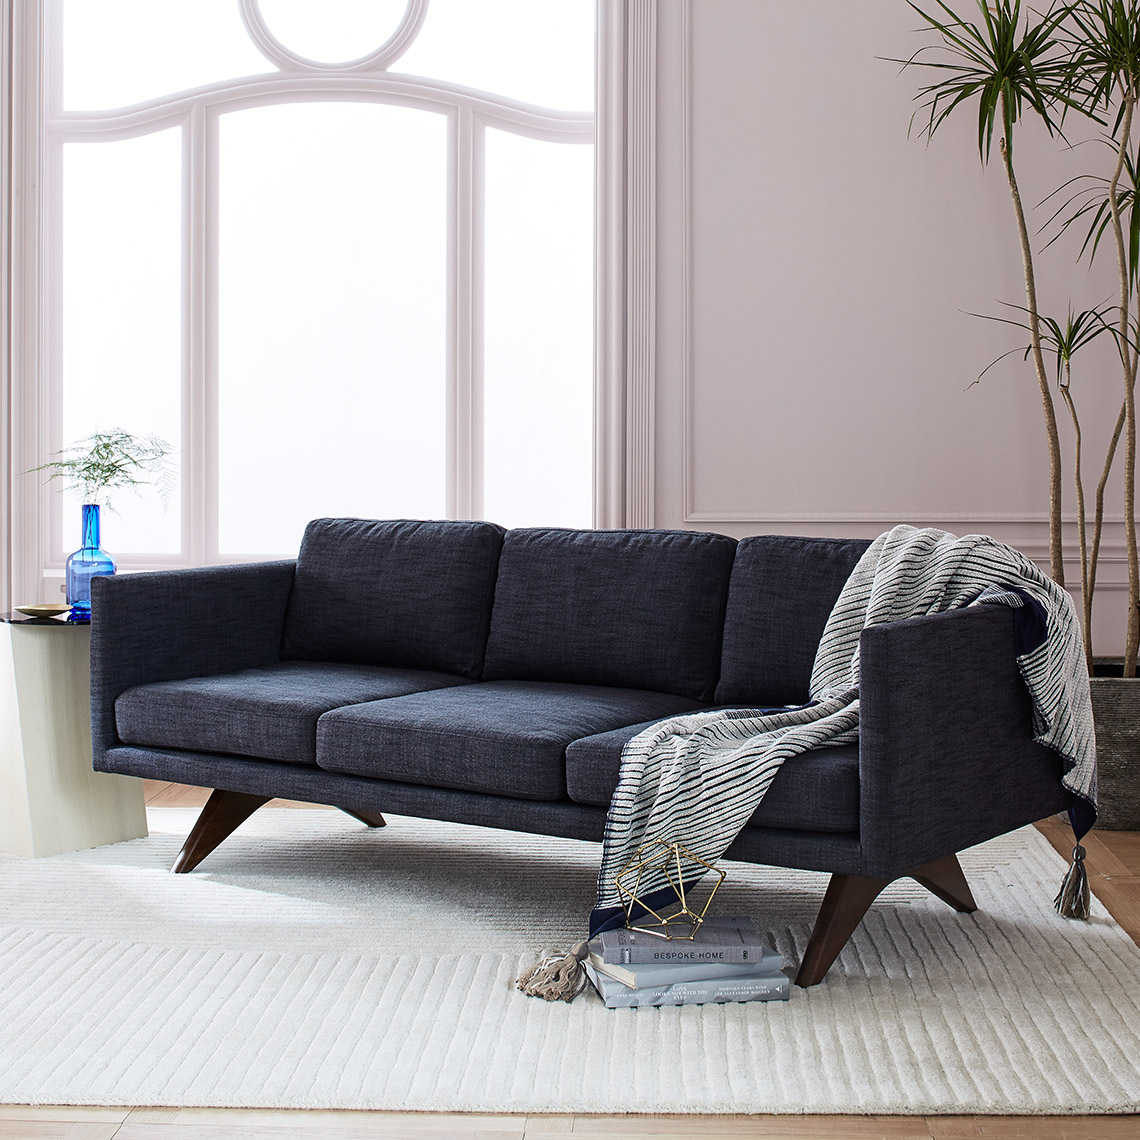 pip-brooklyn-3-seater-sofa-indigo-su17-055